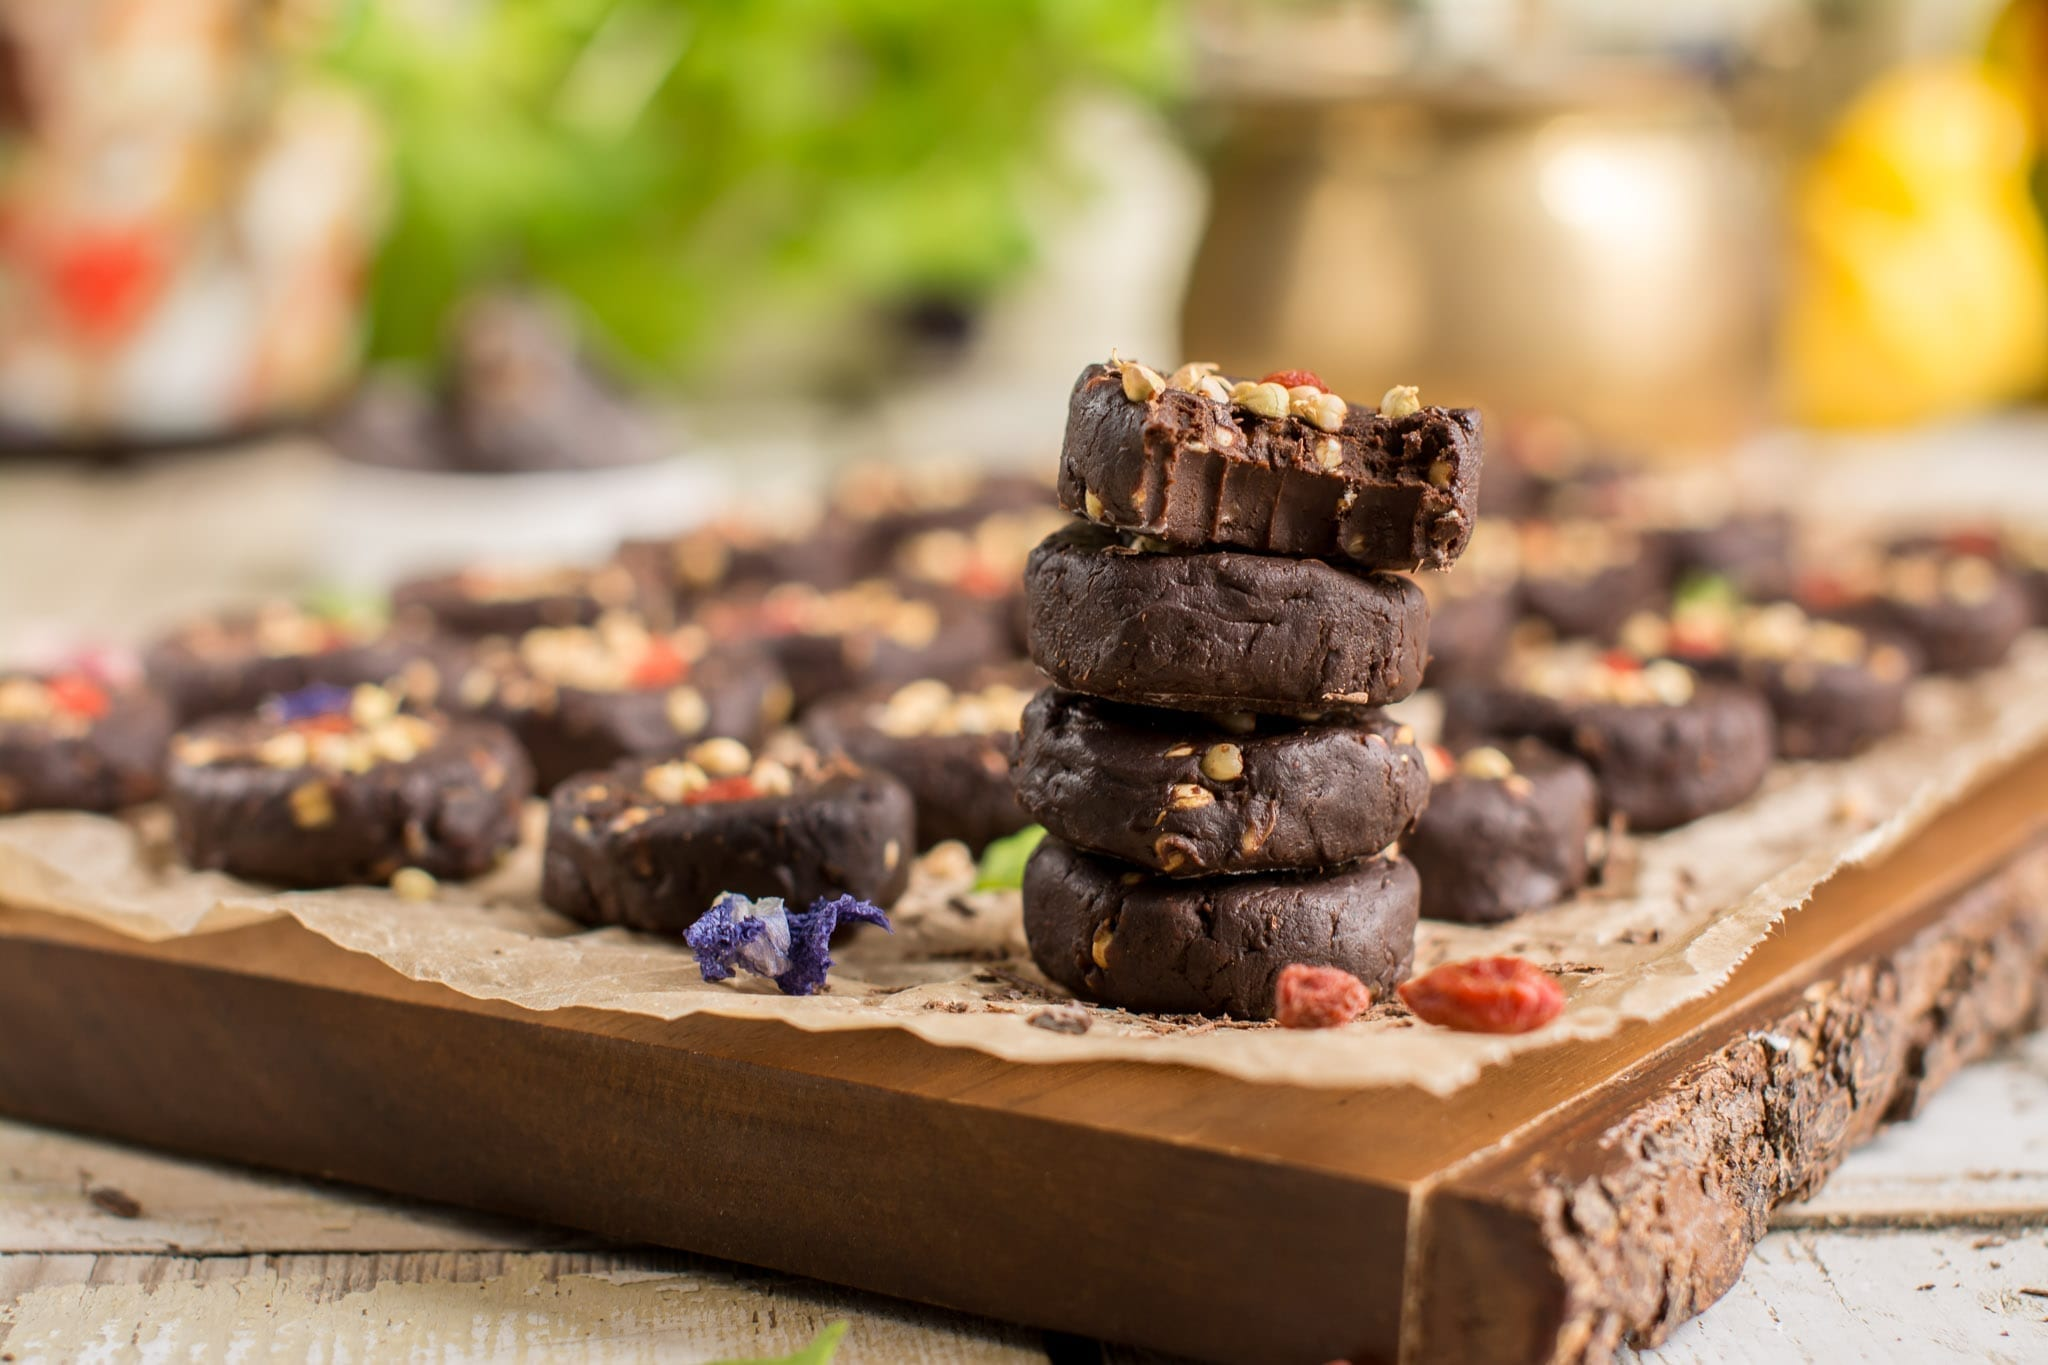 vegan Candida diet recipes Homemade Vegan Chocolate Candies with Oats